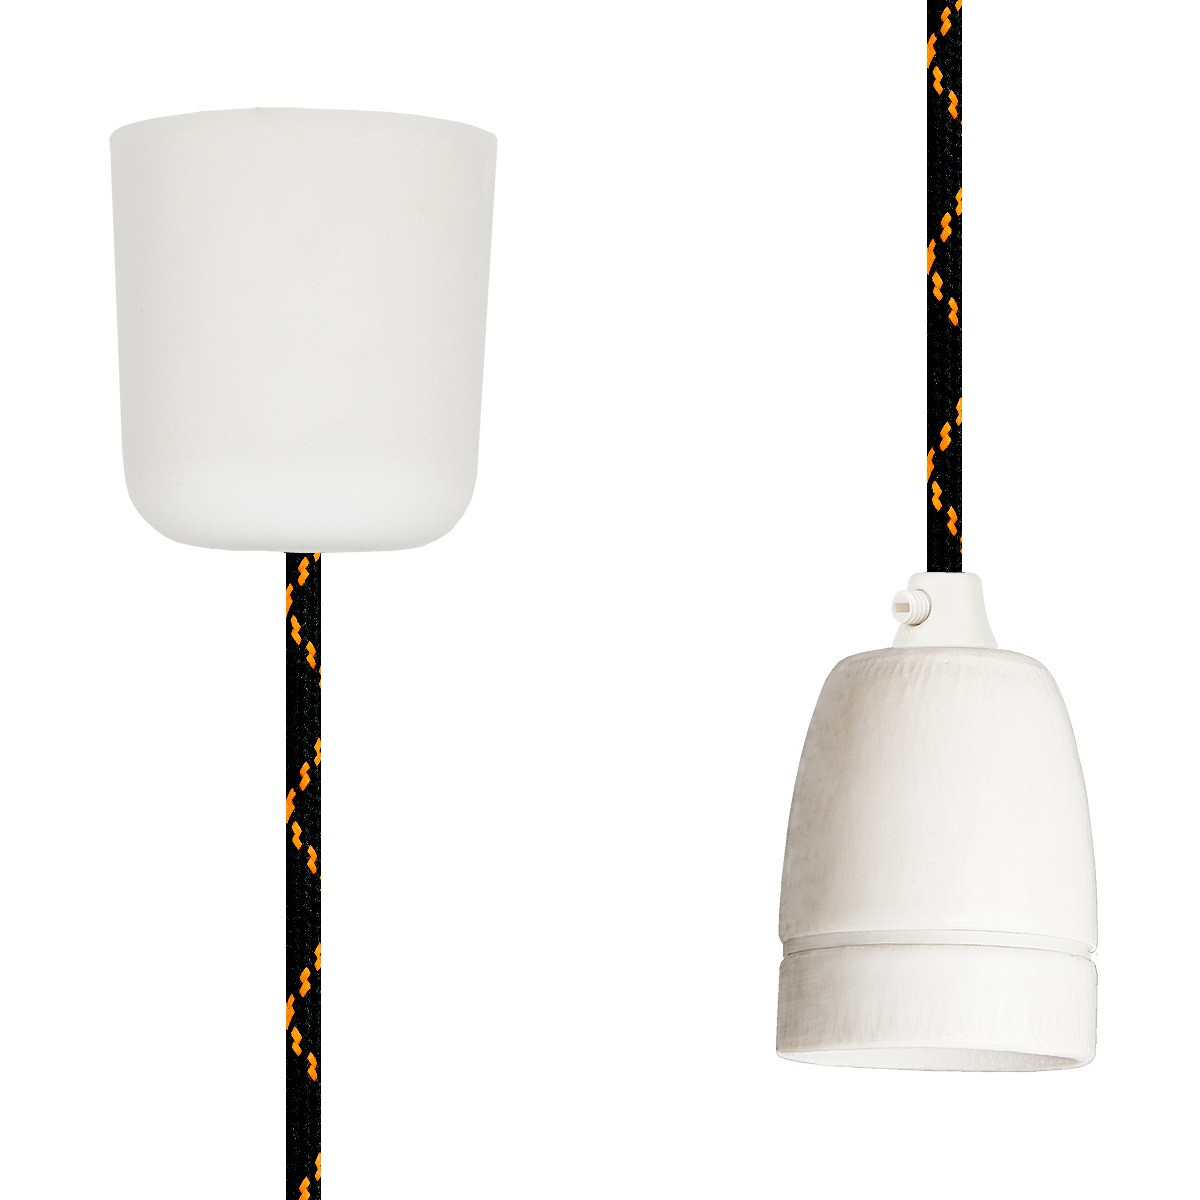 Pendant Lamp Porcelain Black Orange